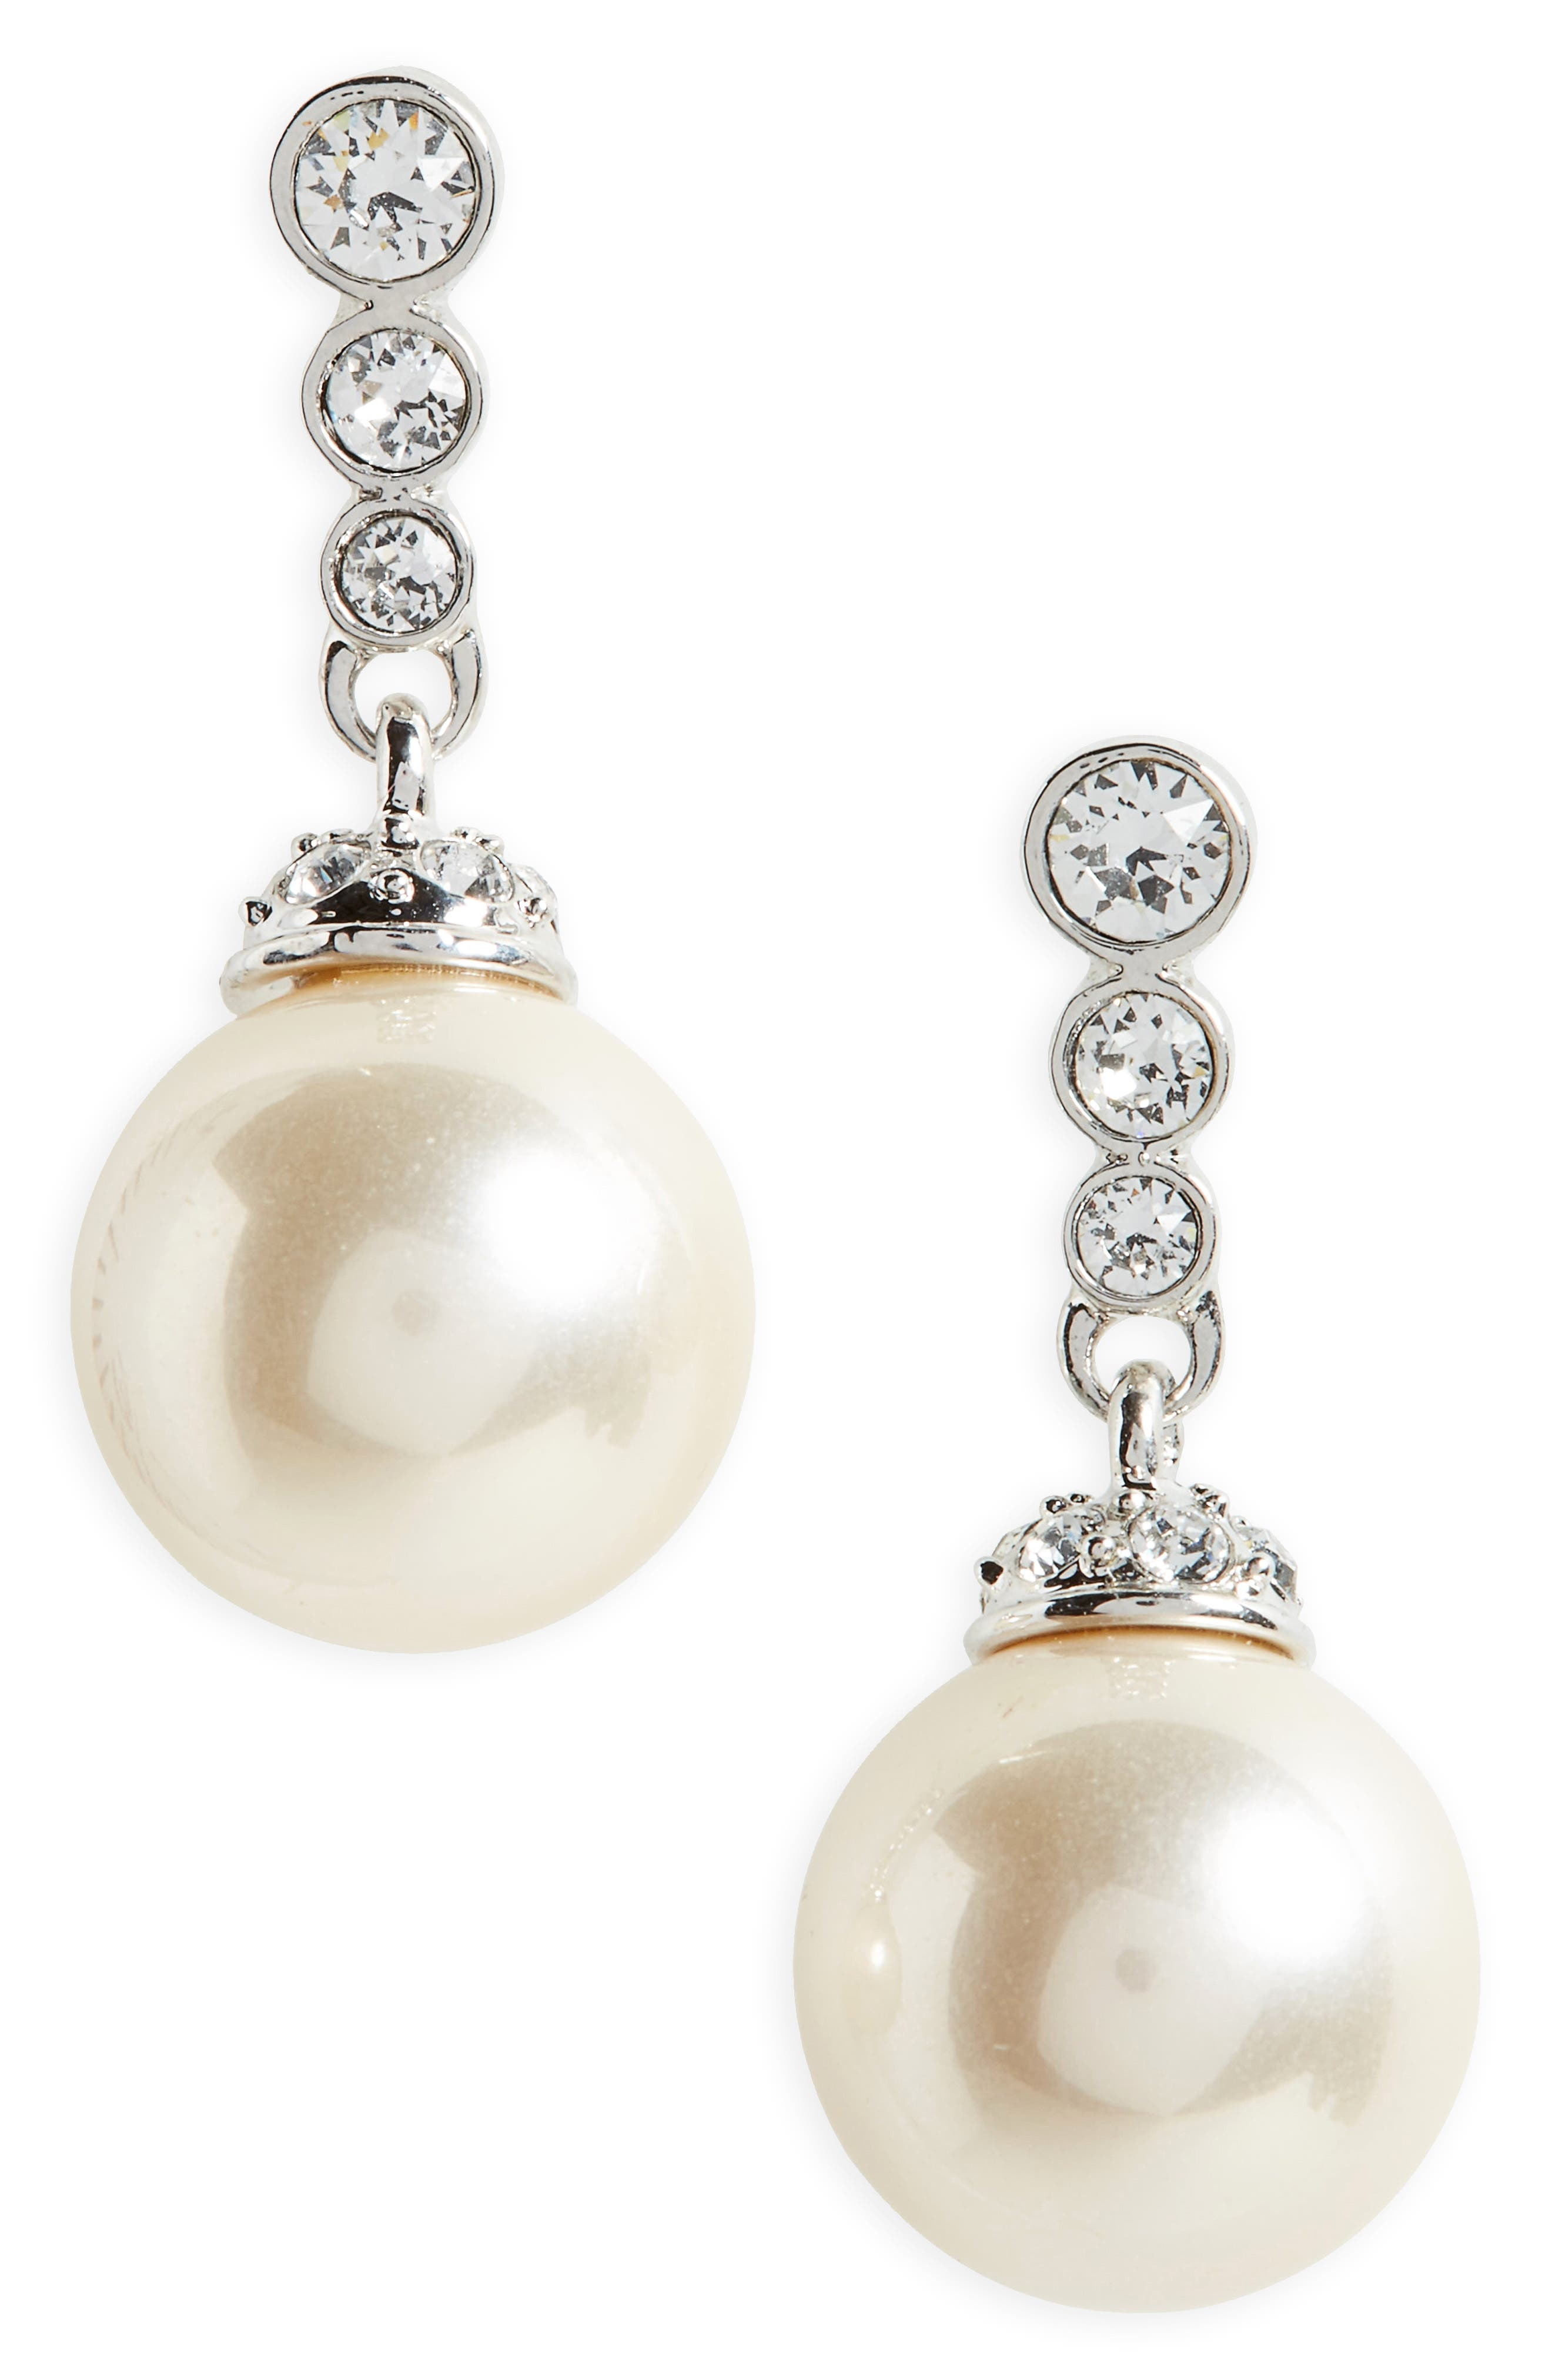 Imitation Pearl Drop Earrings,                             Main thumbnail 1, color,                             Ivory Pearl / Silver